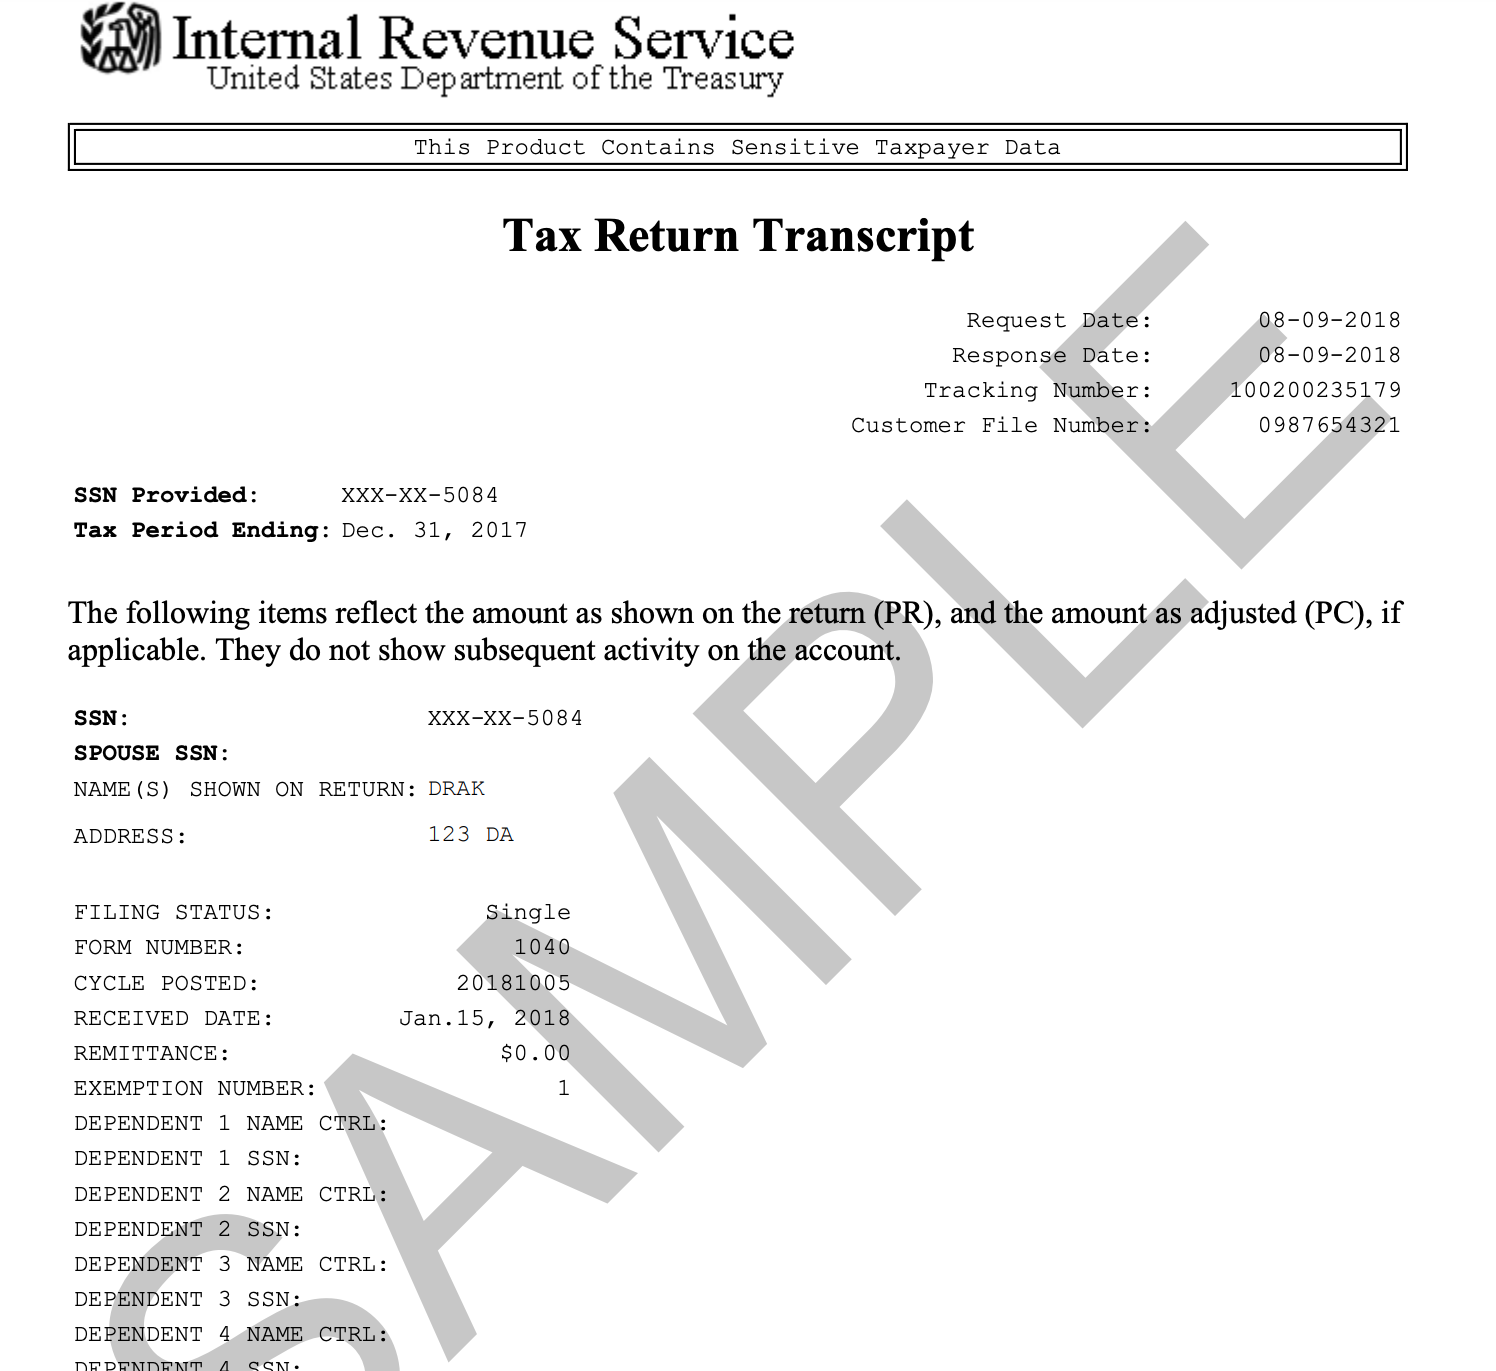 U.S. Federal Tax Return Transcript